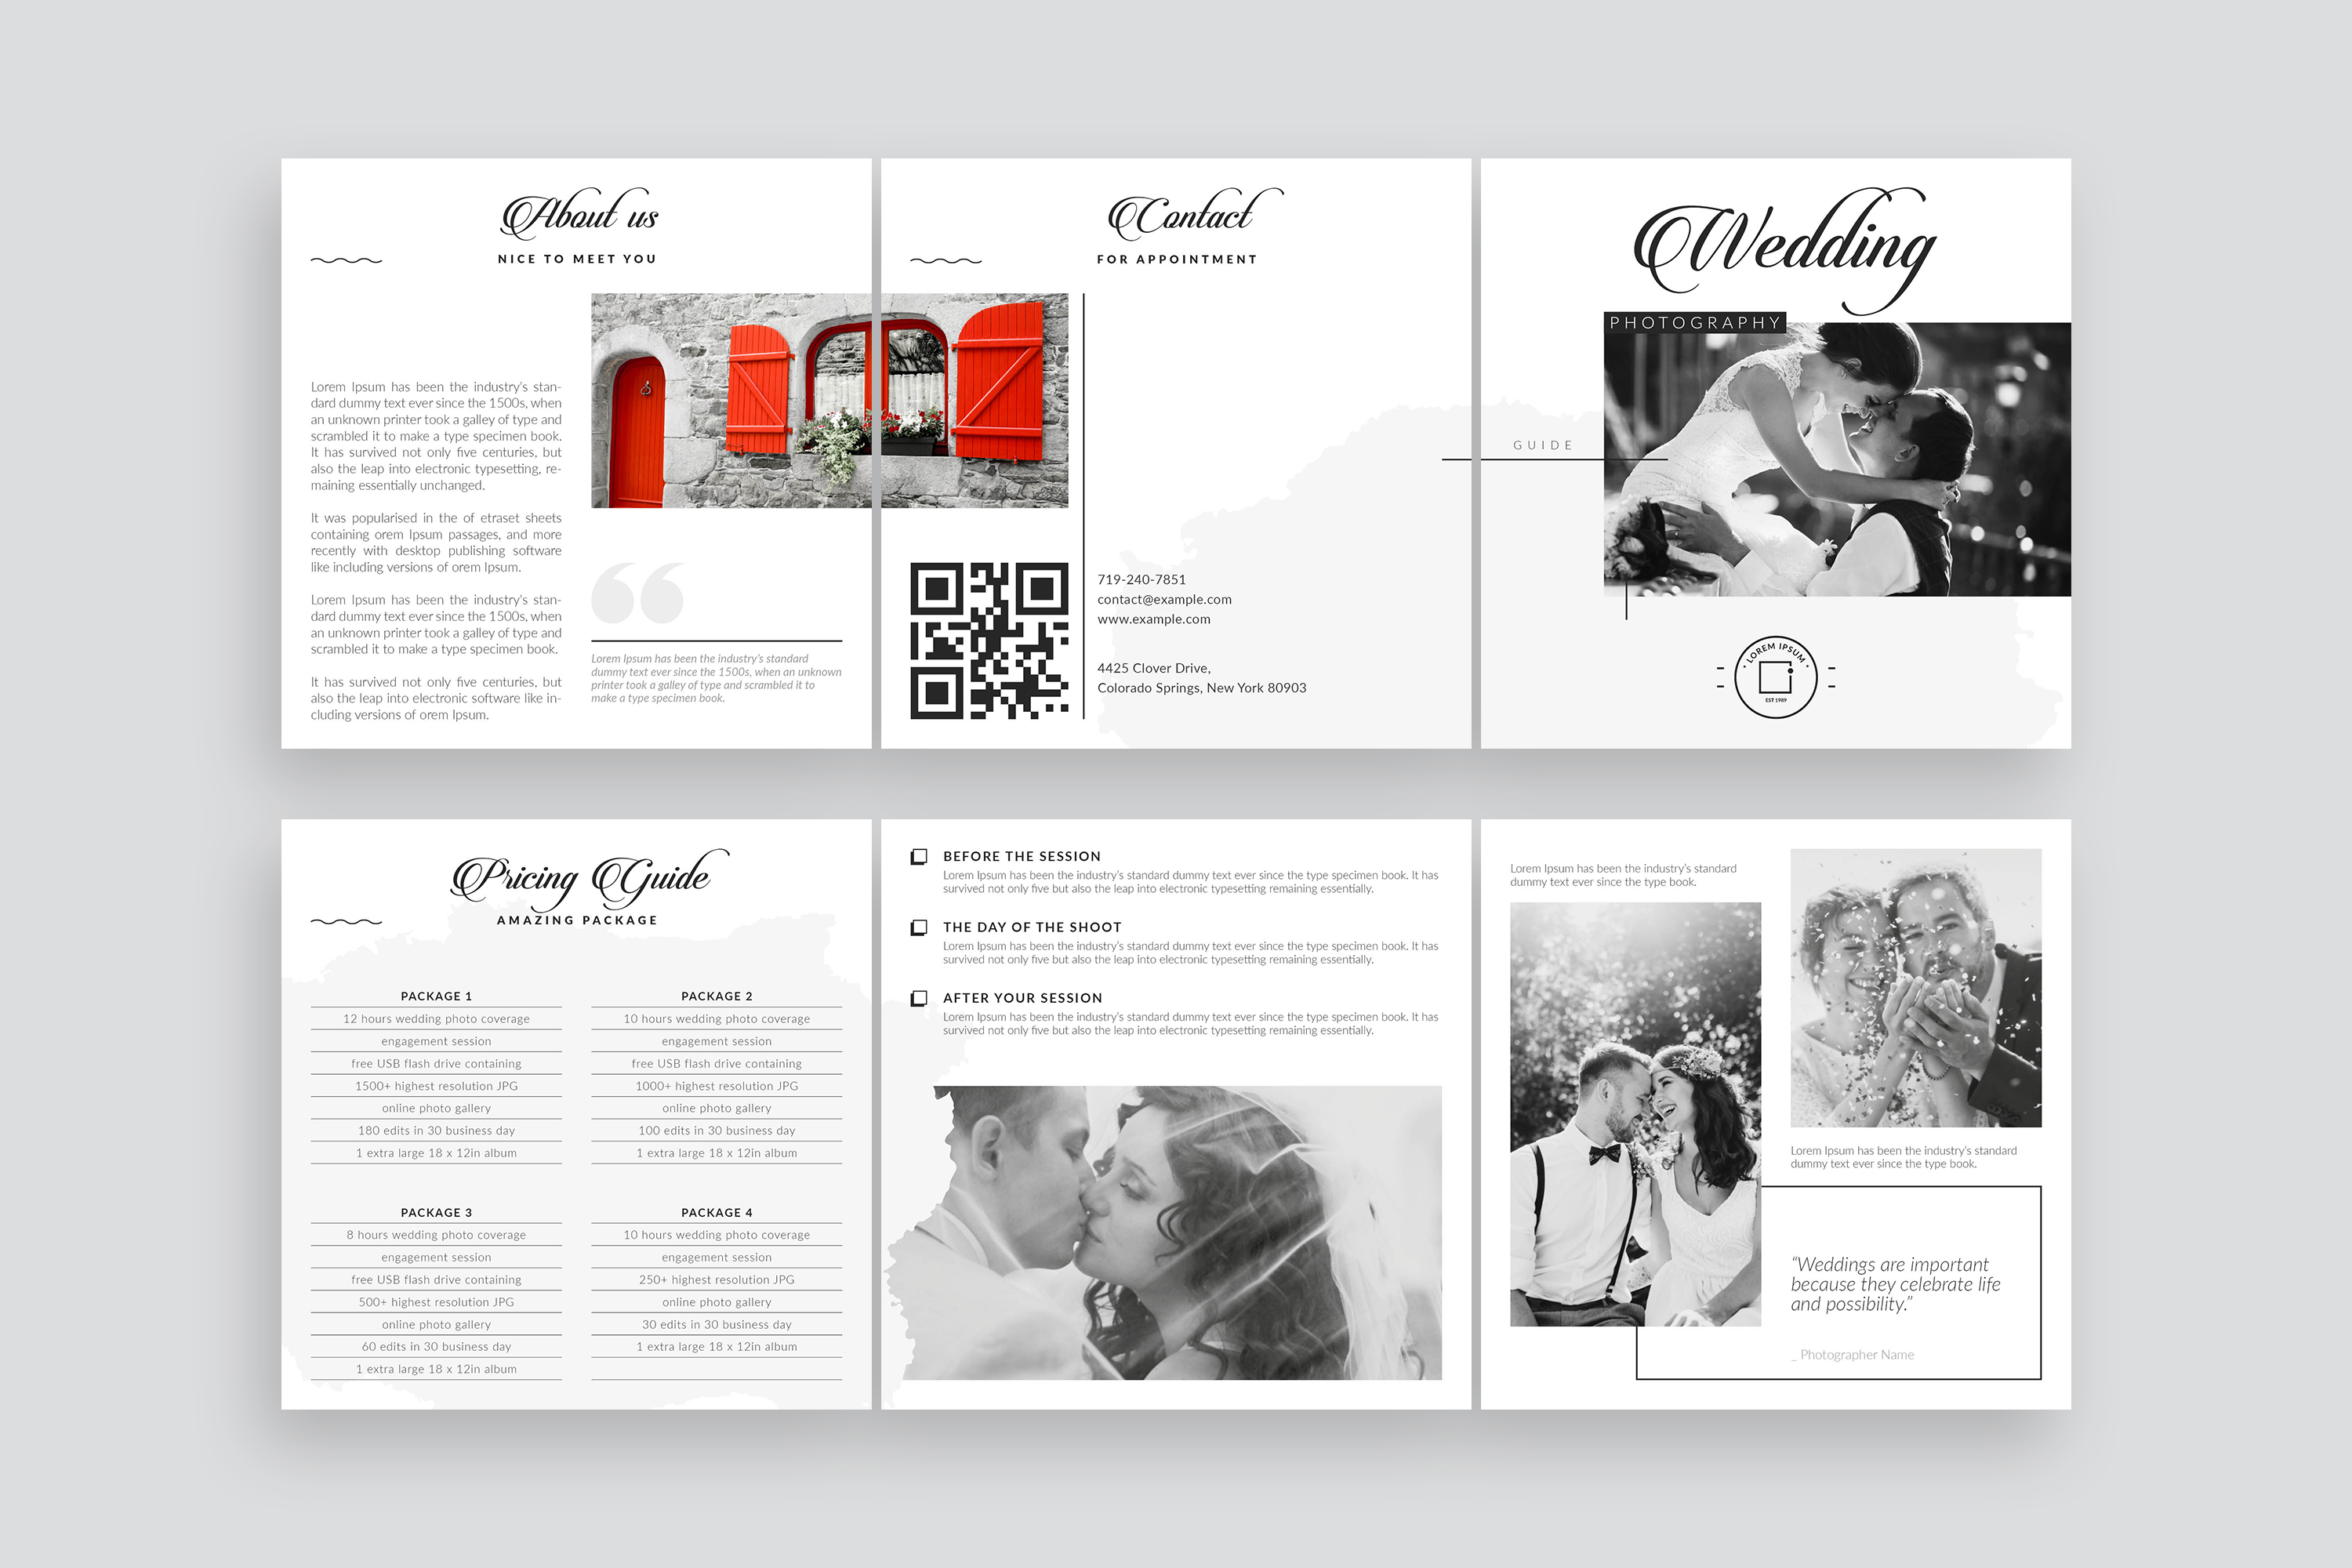 Wedding Photography Pricing Guides Tri-Fold Brochure Layout example image 2